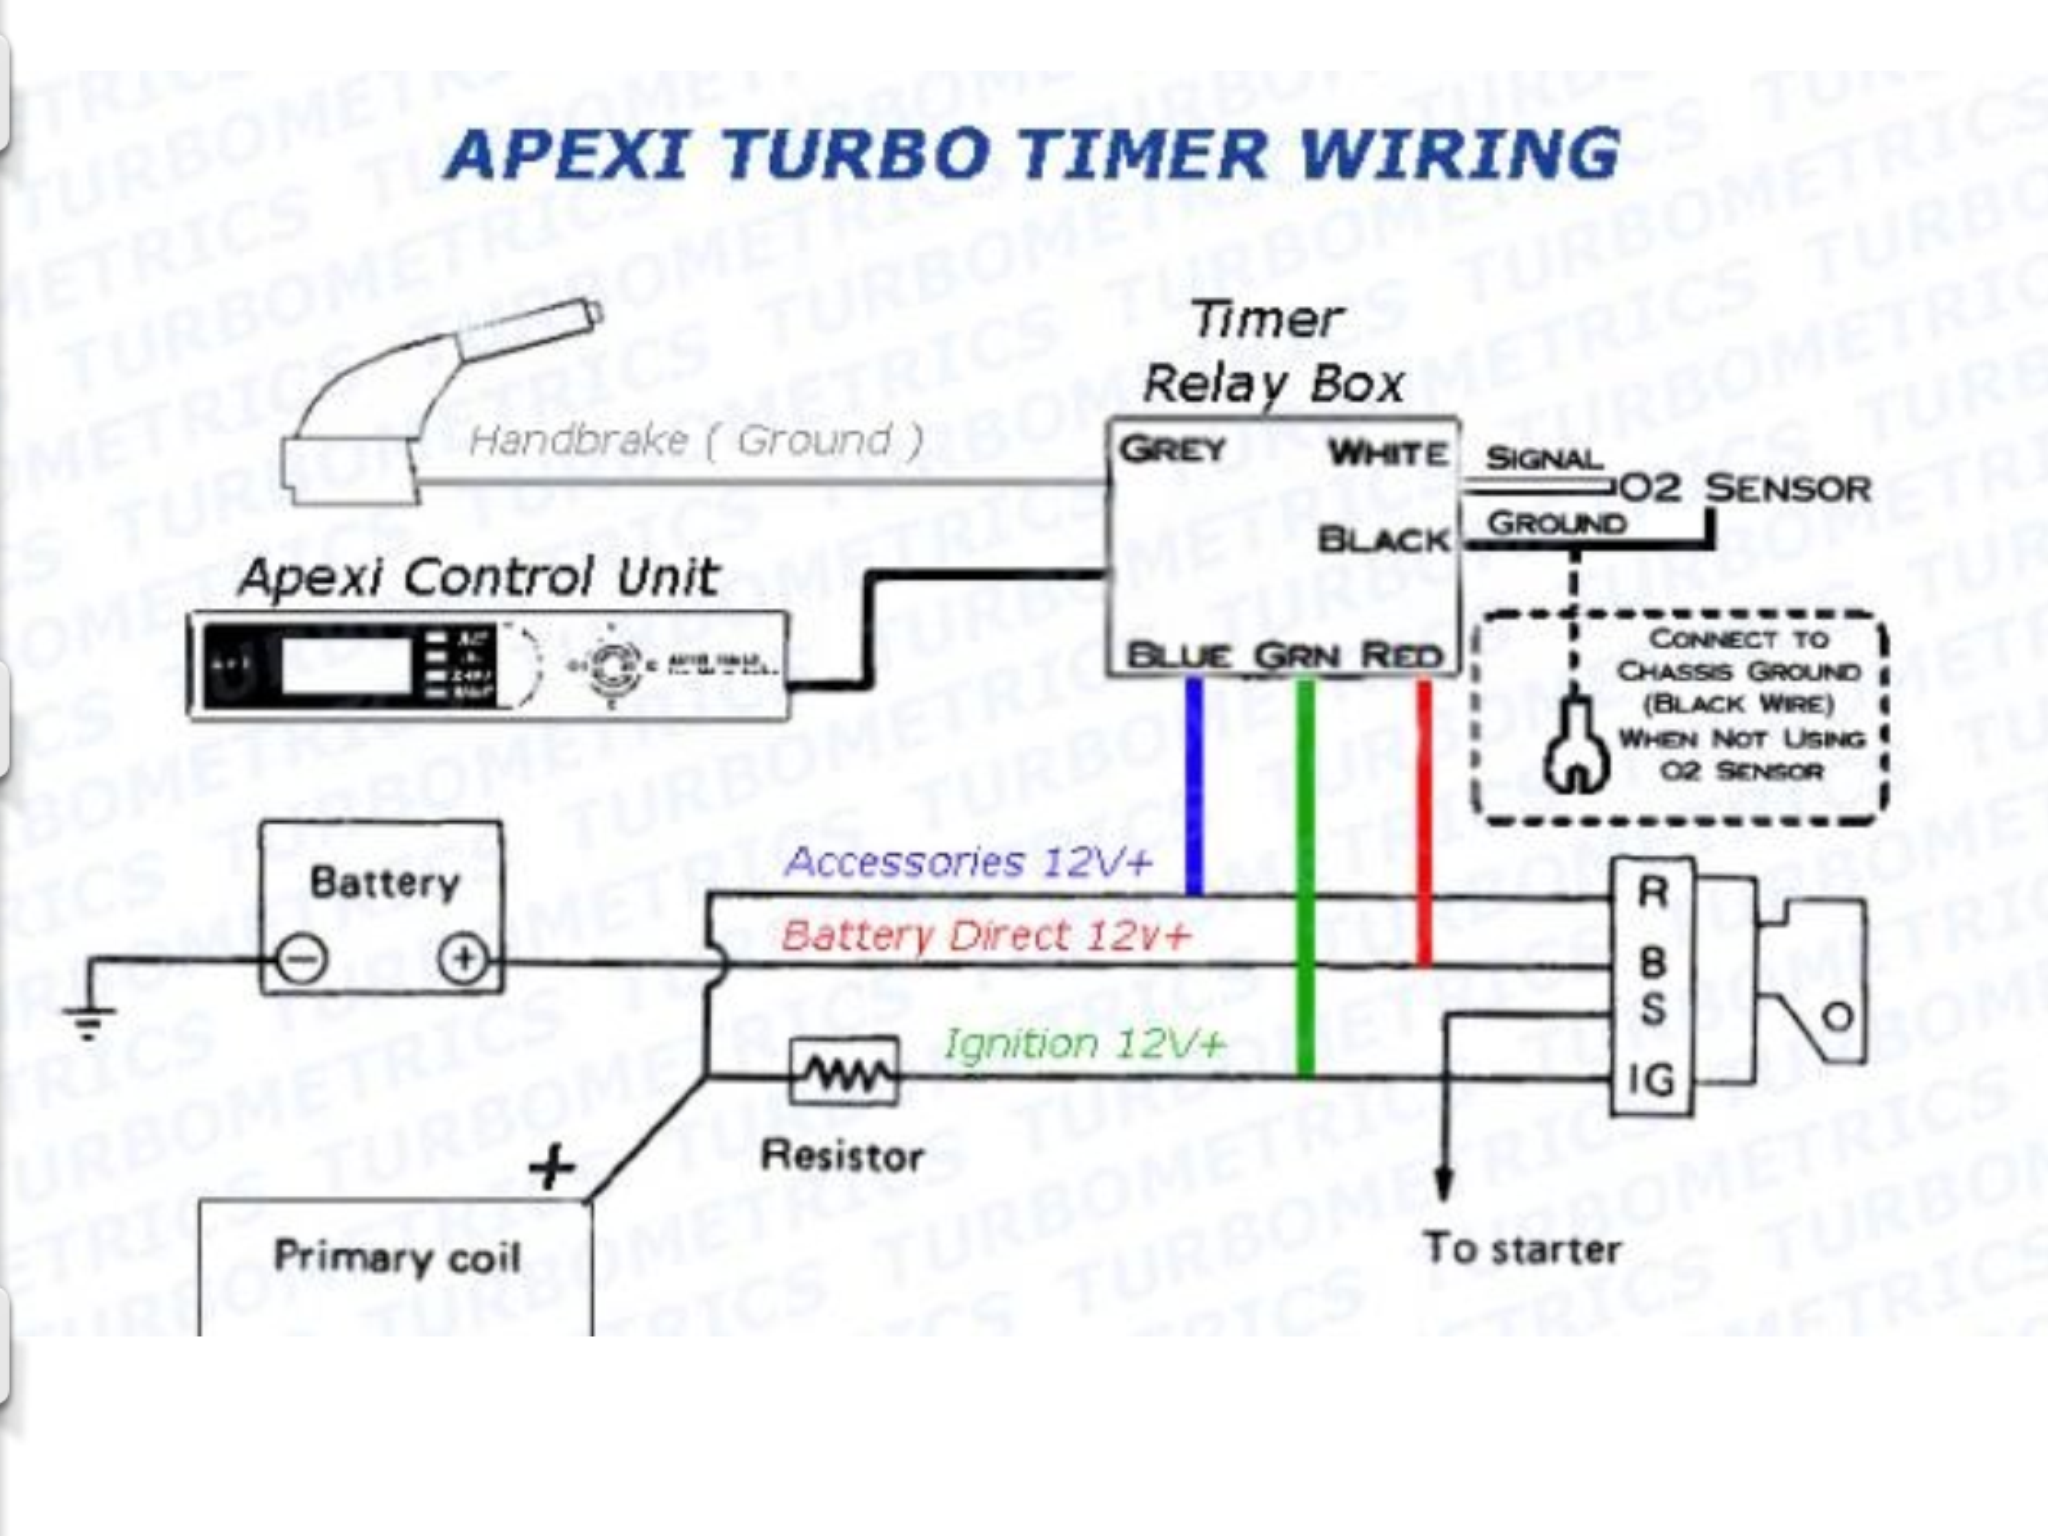 300zx hks turbo timer wiring diagram list of schematic circuit g reddy turbo  timer wiring diagram